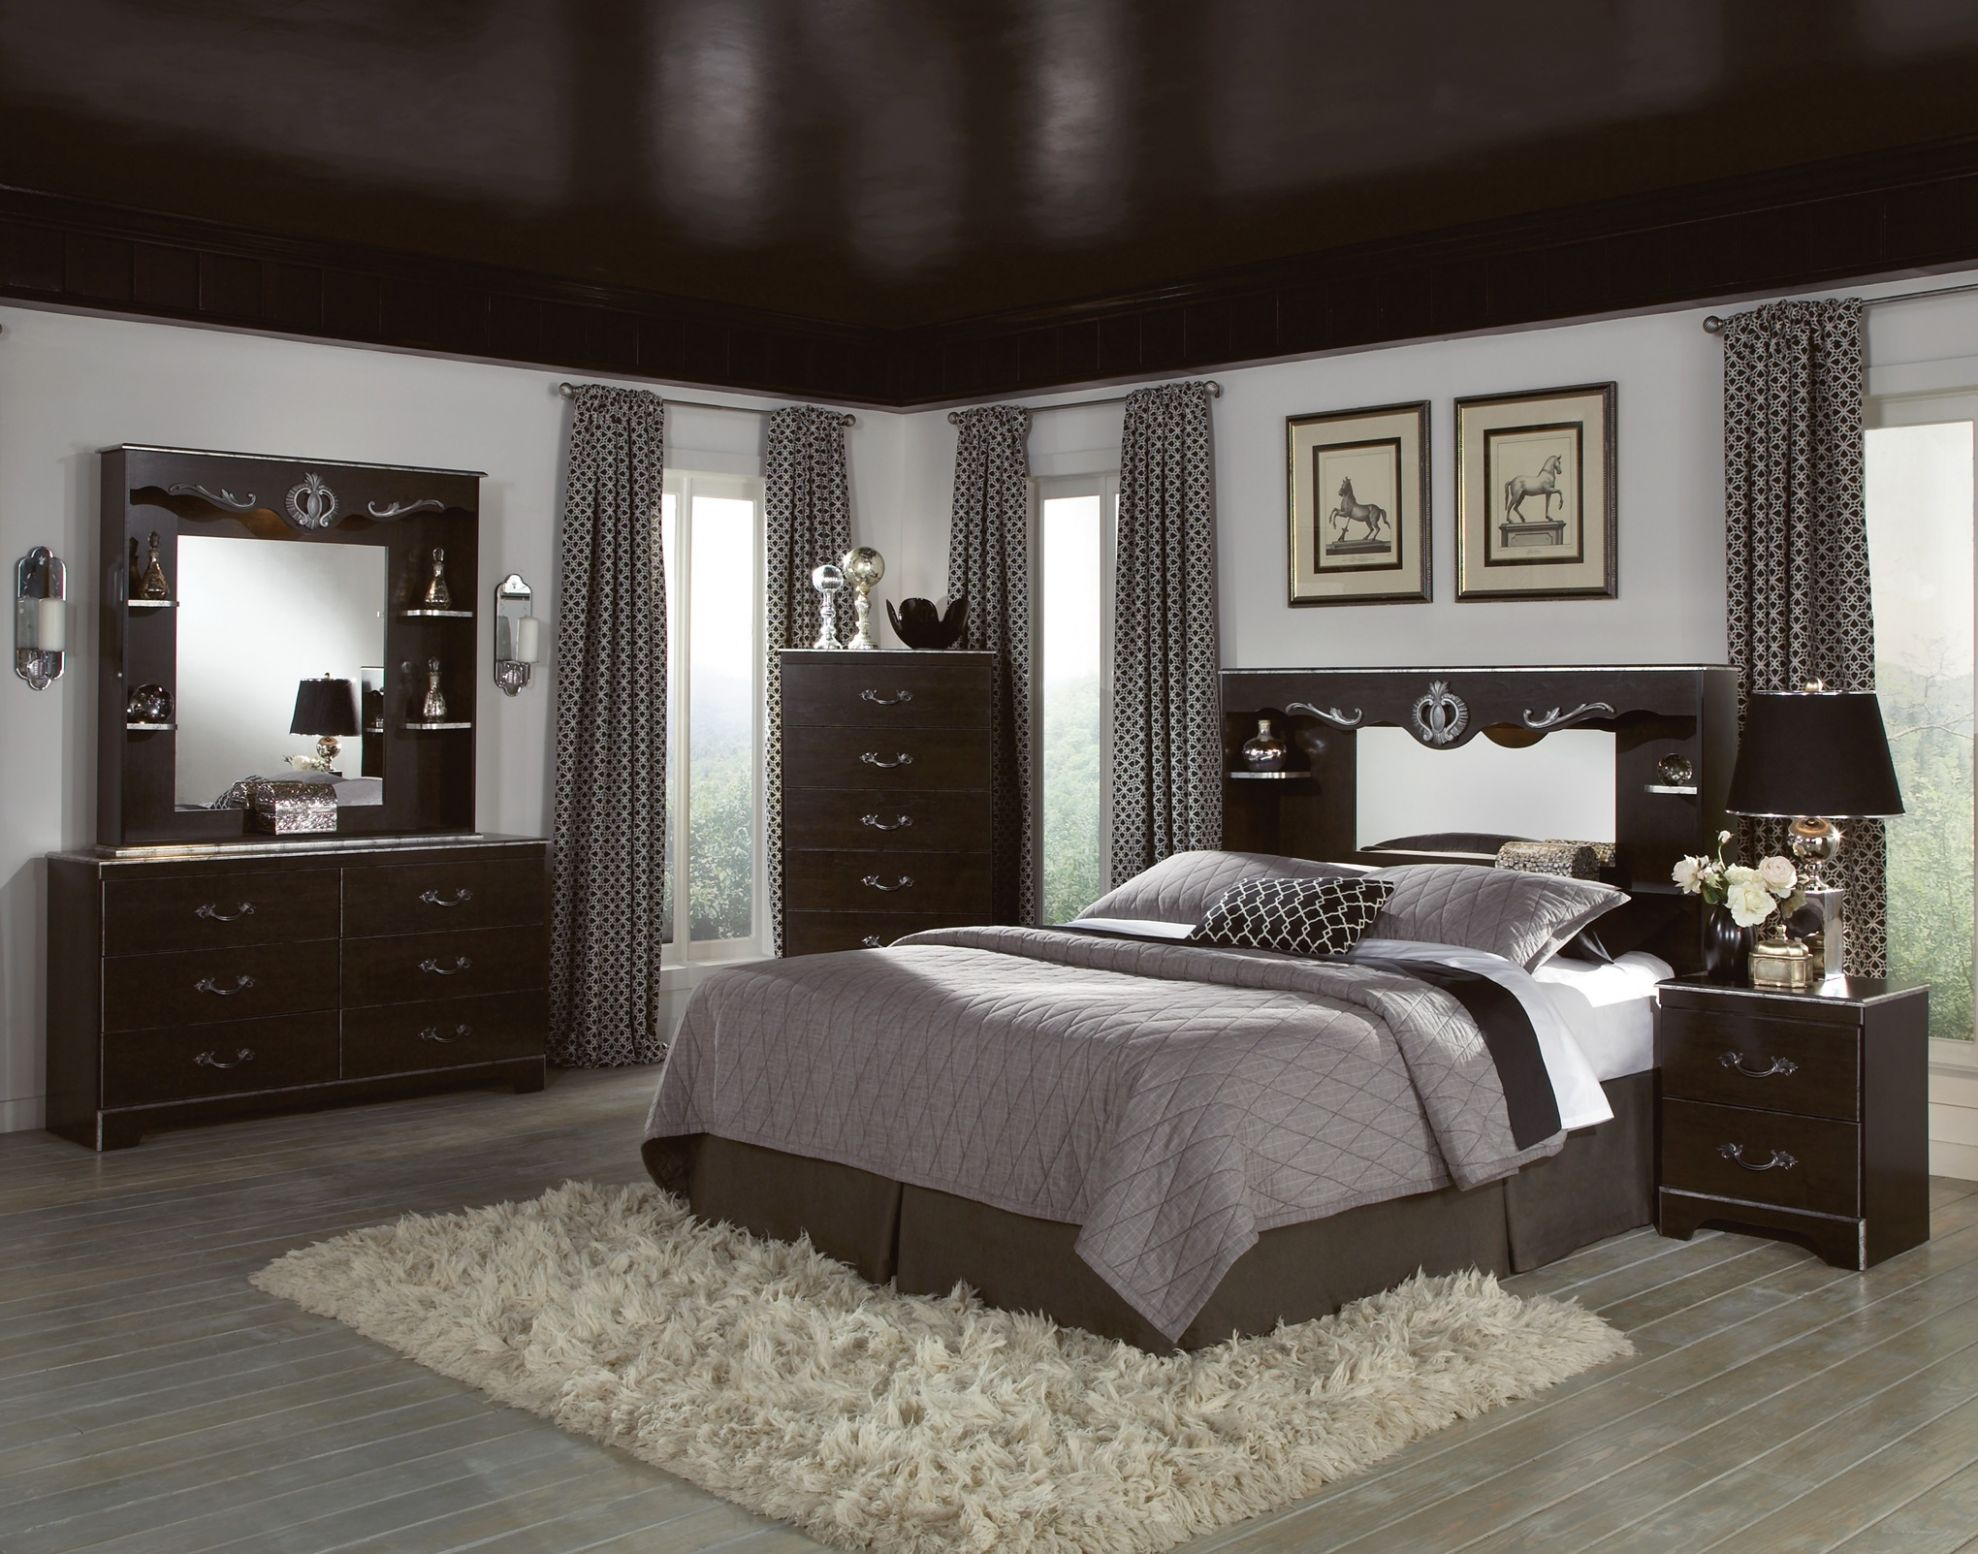 Brilliant Black Furniture Bedroom Idea Interior Awesome ..